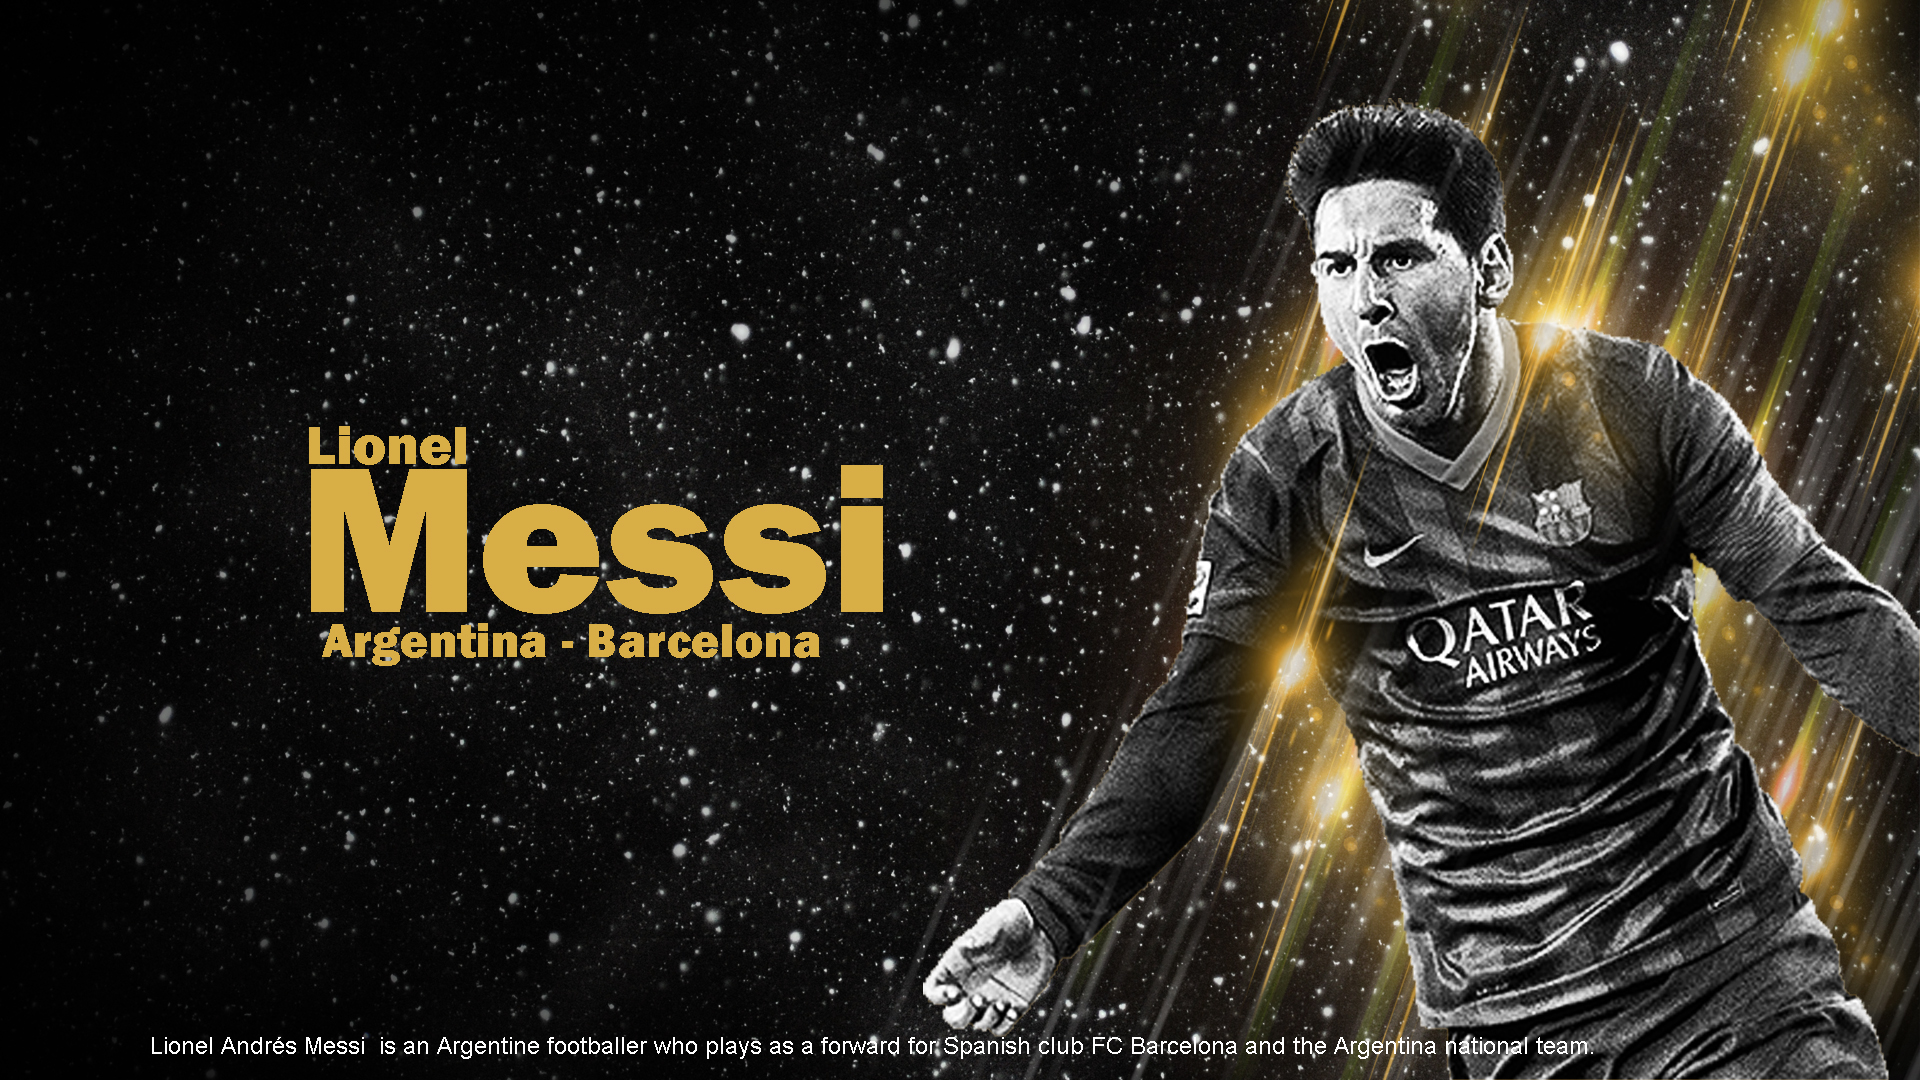 Lionel Messi Wallpaper 2015 HD Wallpapers HD images HD Pictures 1920x1080